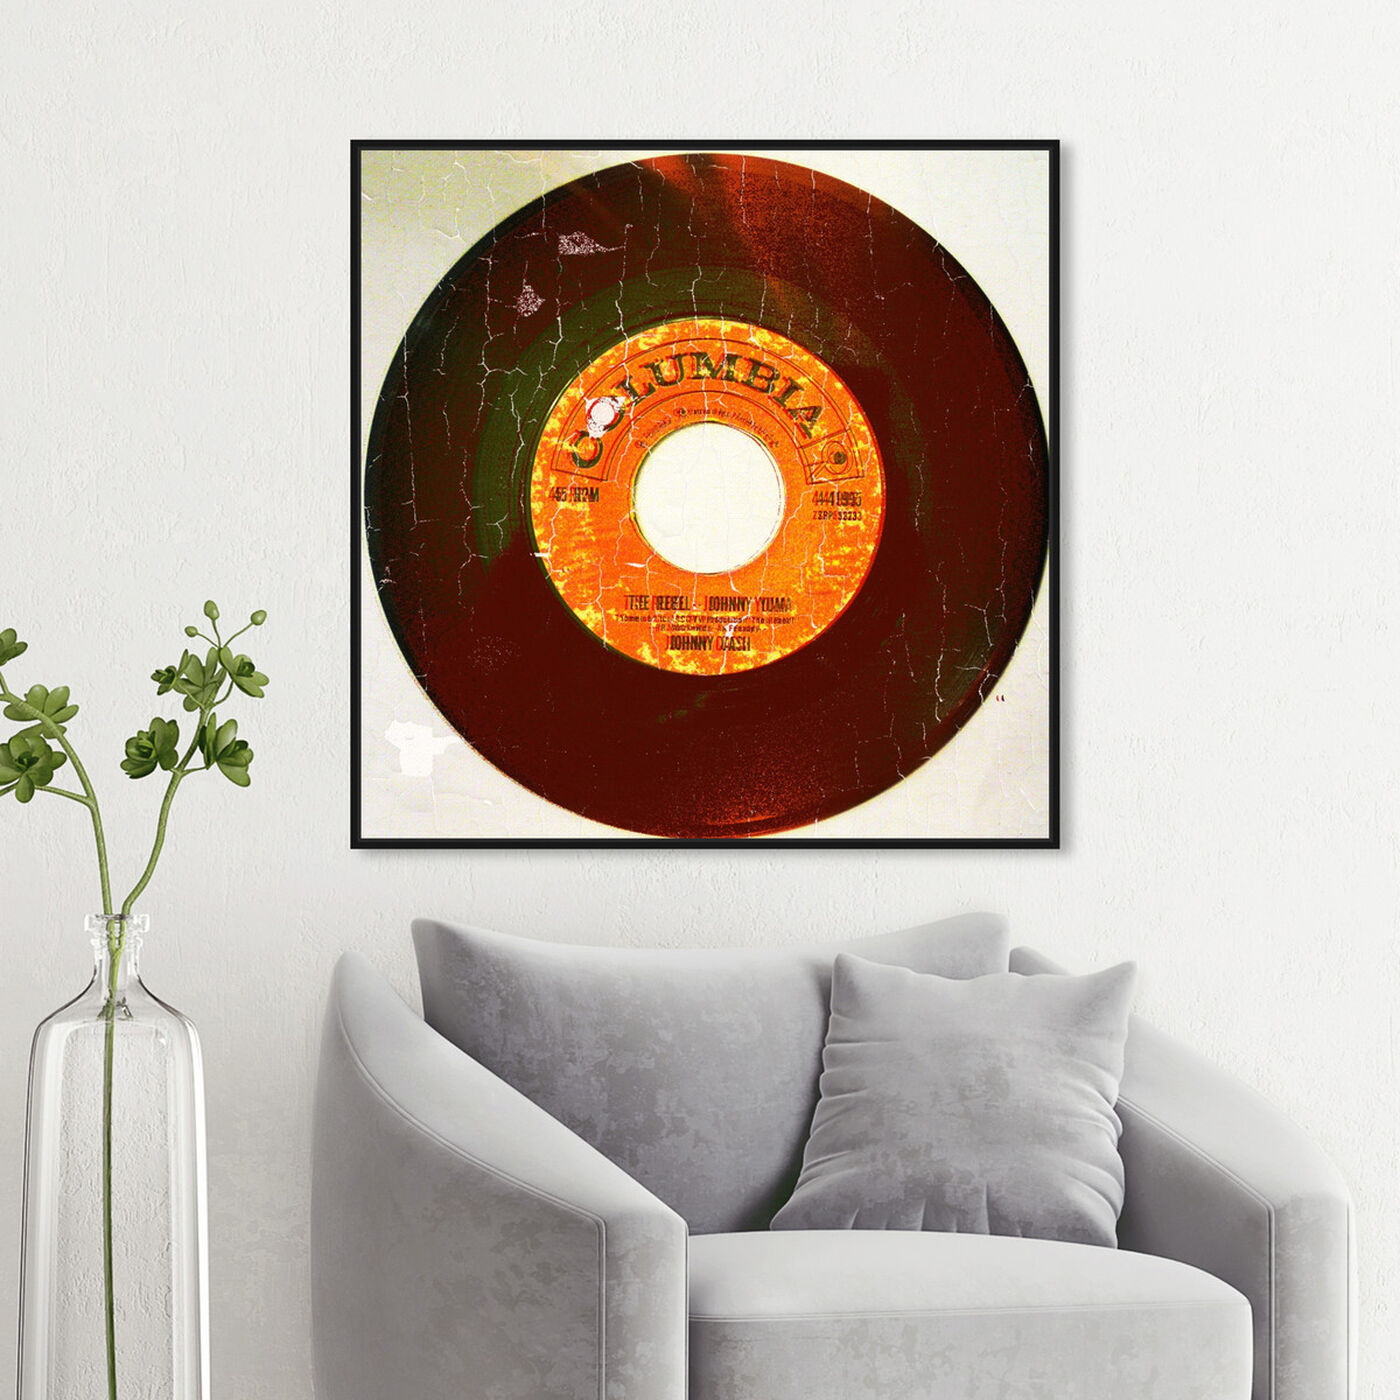 Hanging view of Rebel Vinyl featuring music and dance and vinyl records art.